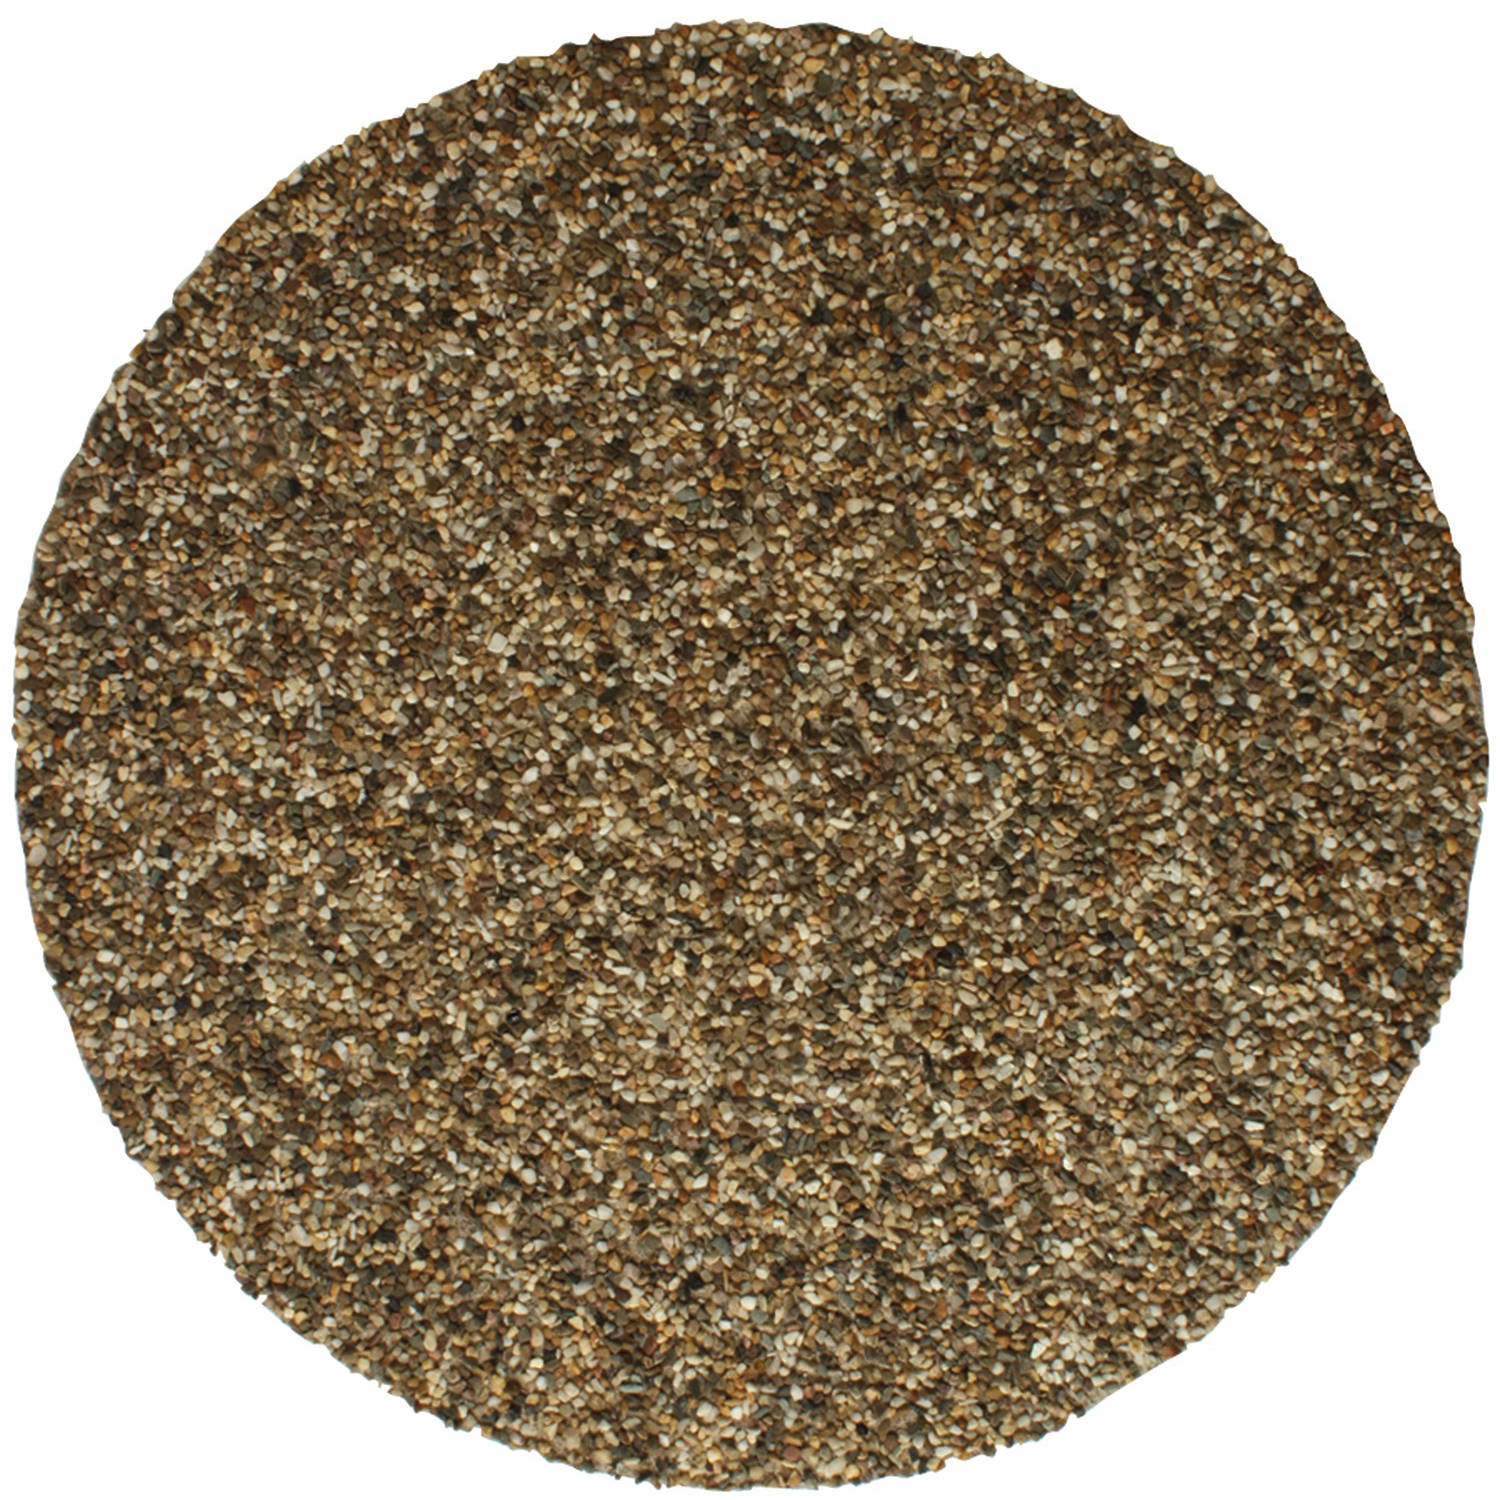 "Tricc Rlgfmr1510 Grill and Fire Pit Mat, 16"" Round, Natural"